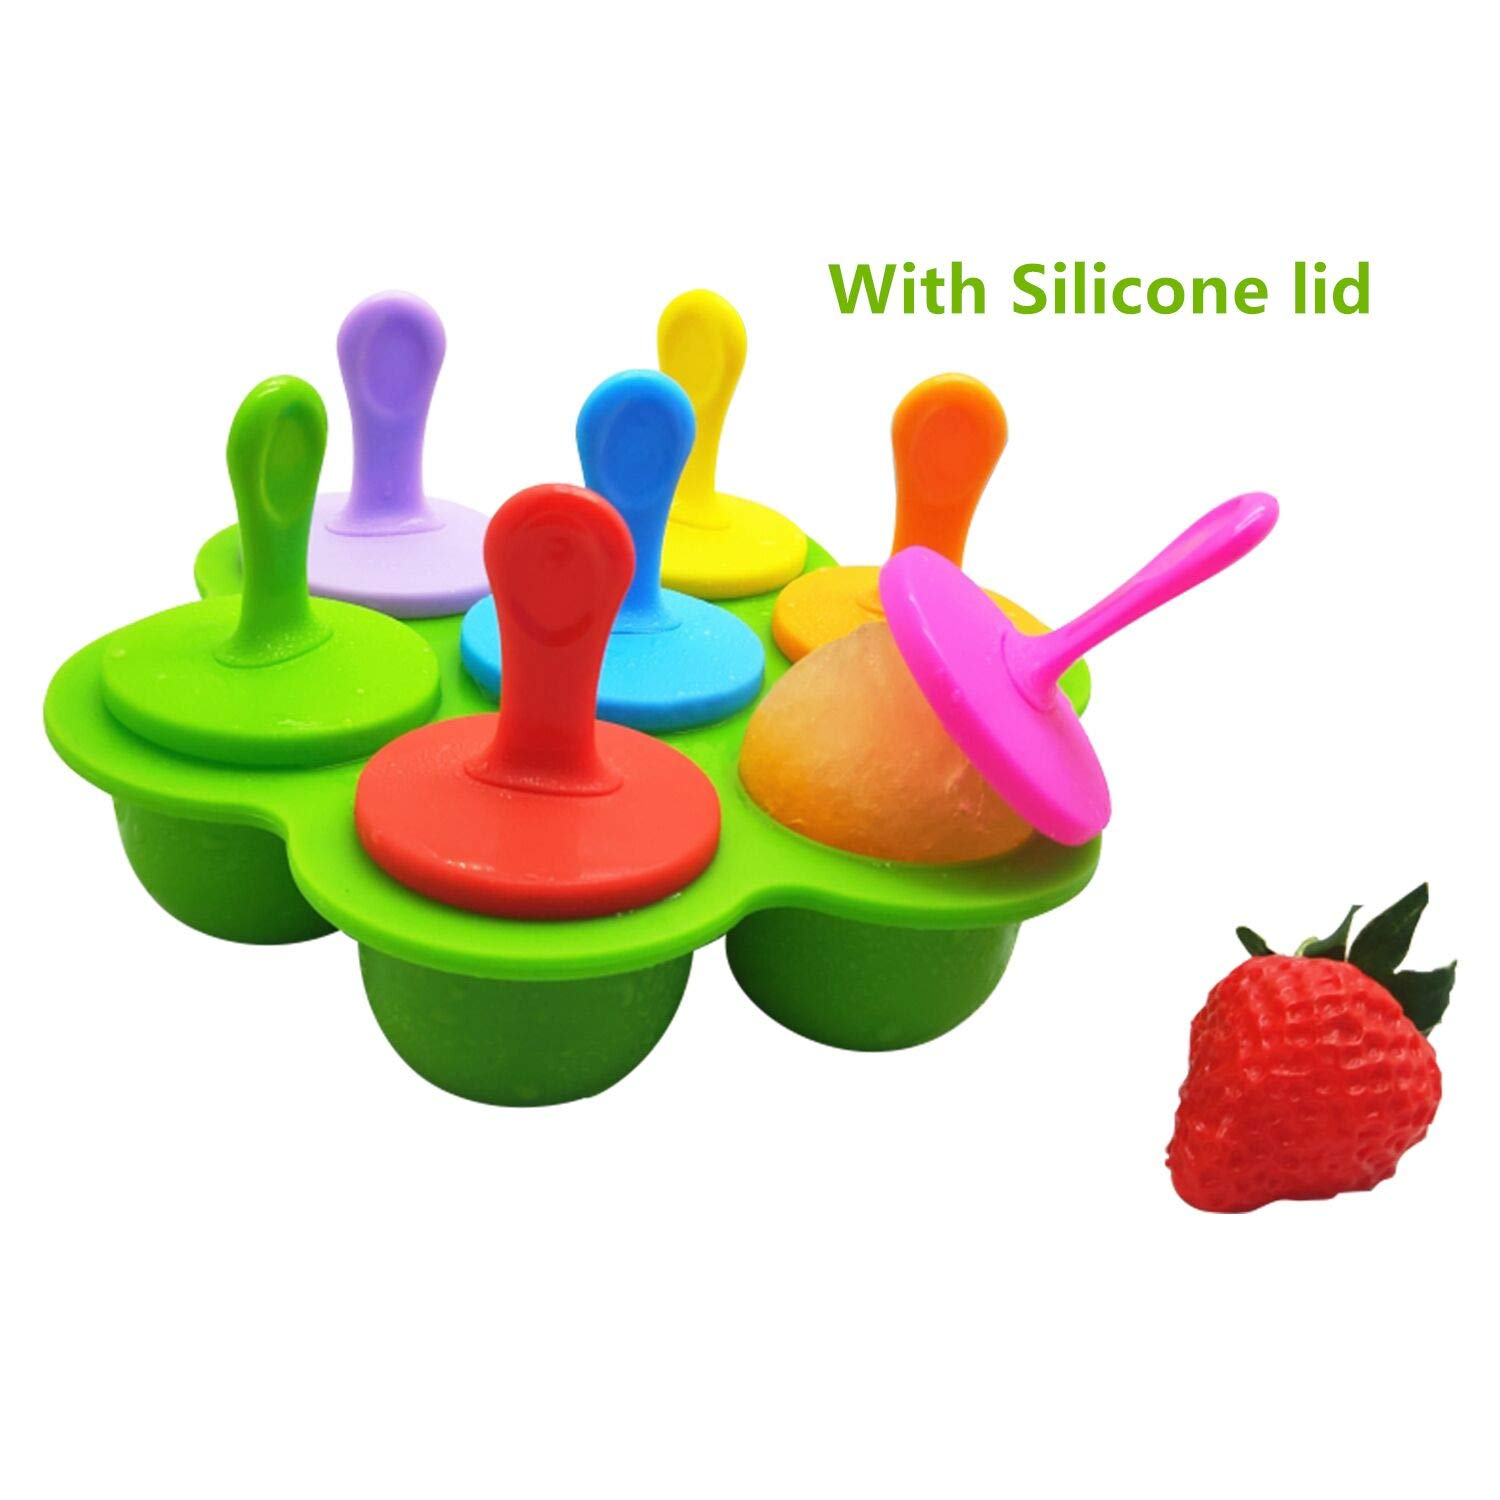 Popsicle Molds & Silicone Egg Bites Molds with Lids Sticks and Drip Catcher Frozen Ice Pop Molds Reusable Easy Release Ice Pop Maker No Drip Pressure Cooker Accessories